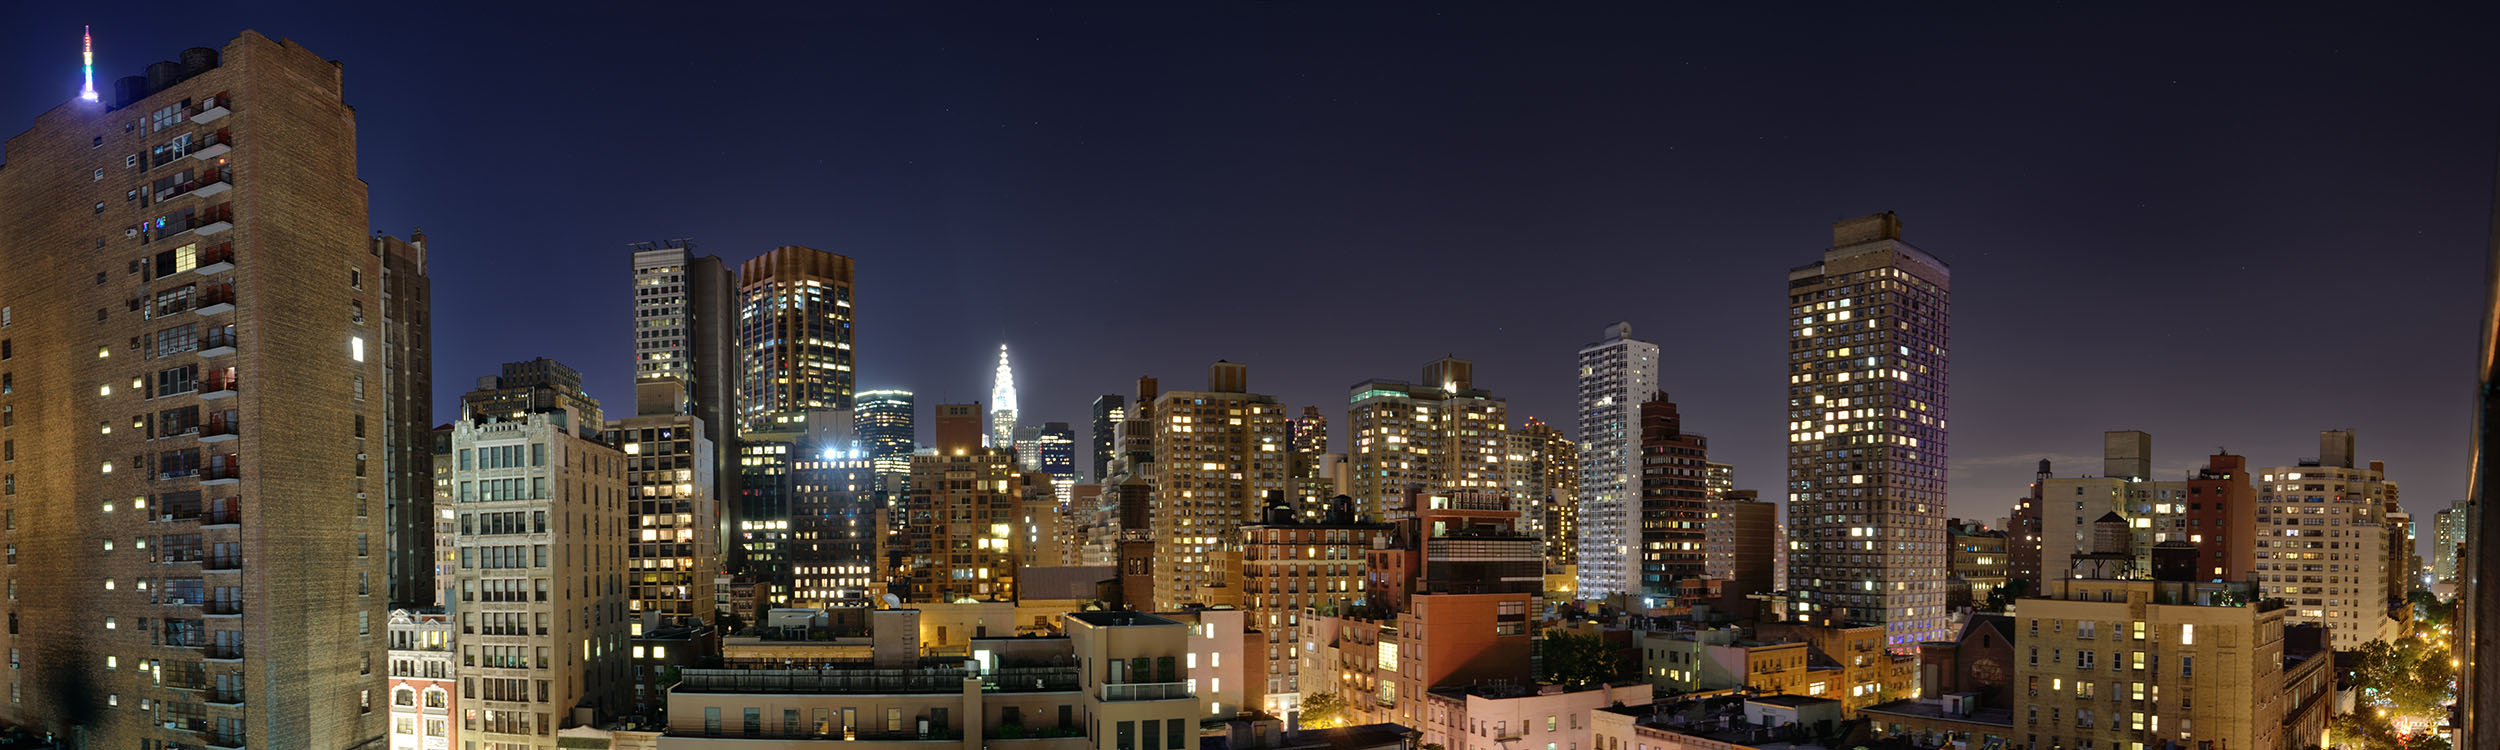 New York from Park South Hotel Roof